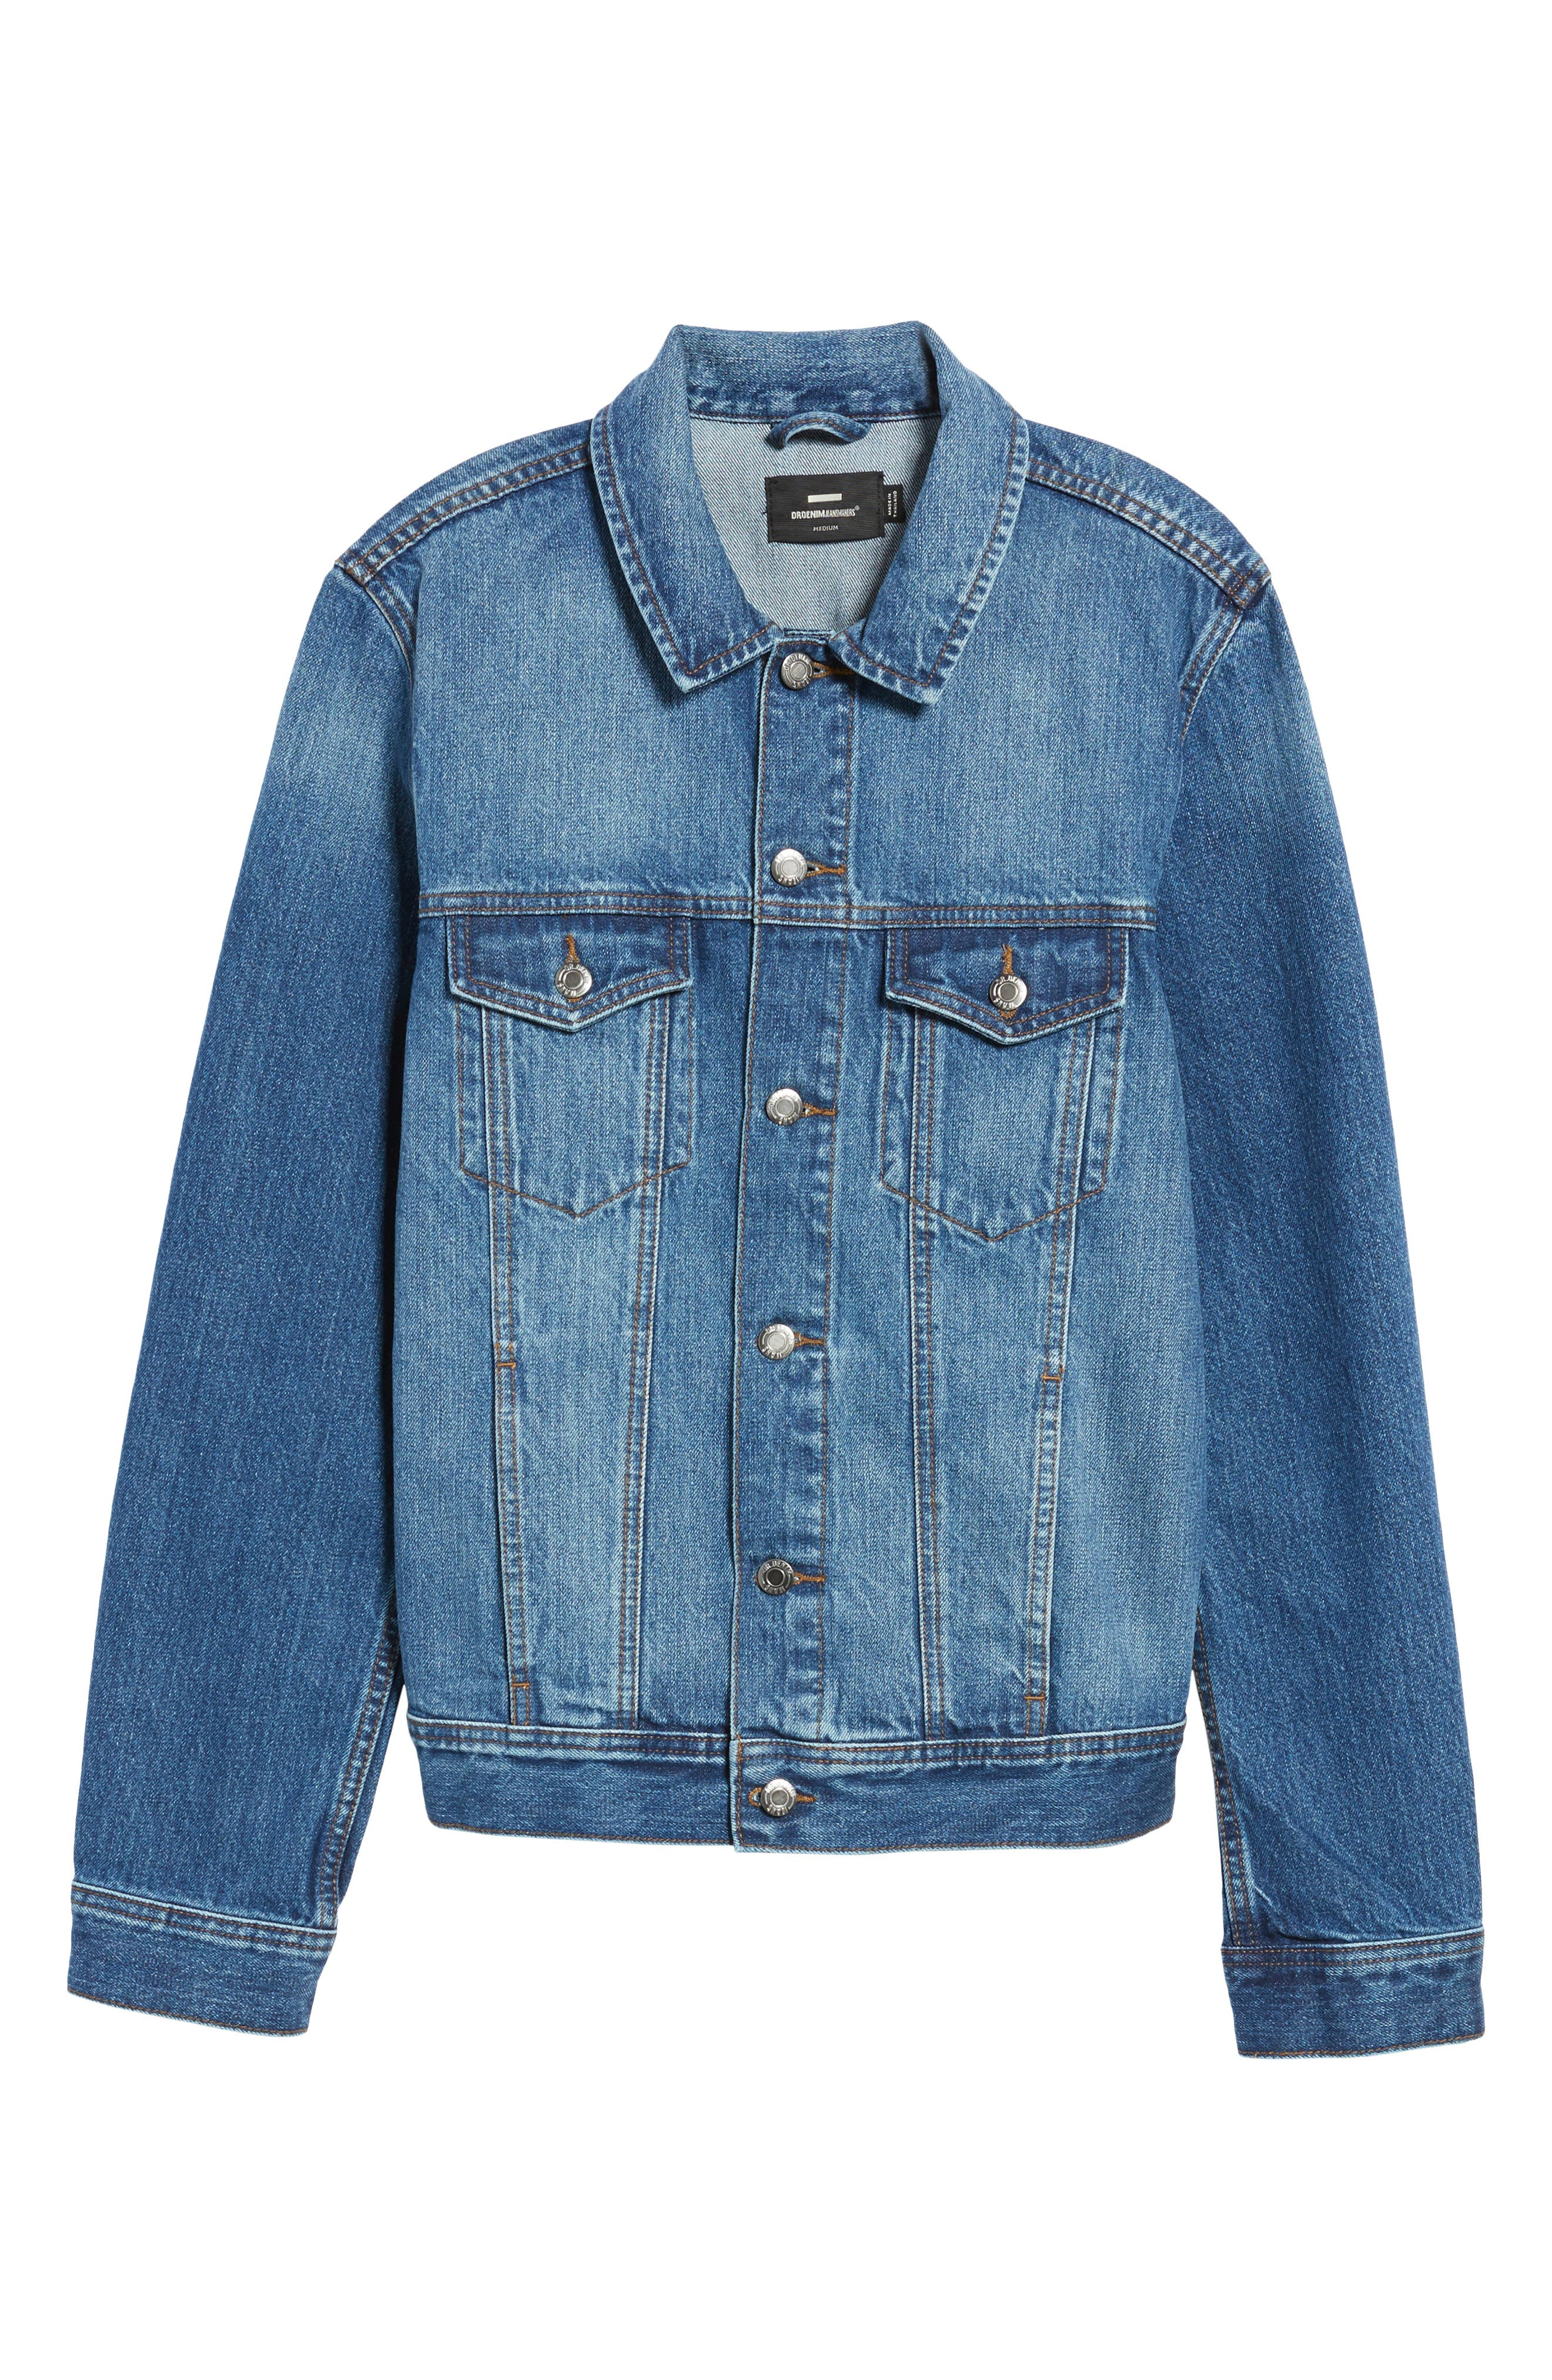 Dwight Denim Jacket,                             Alternate thumbnail 6, color,                             Worn Mid Blue